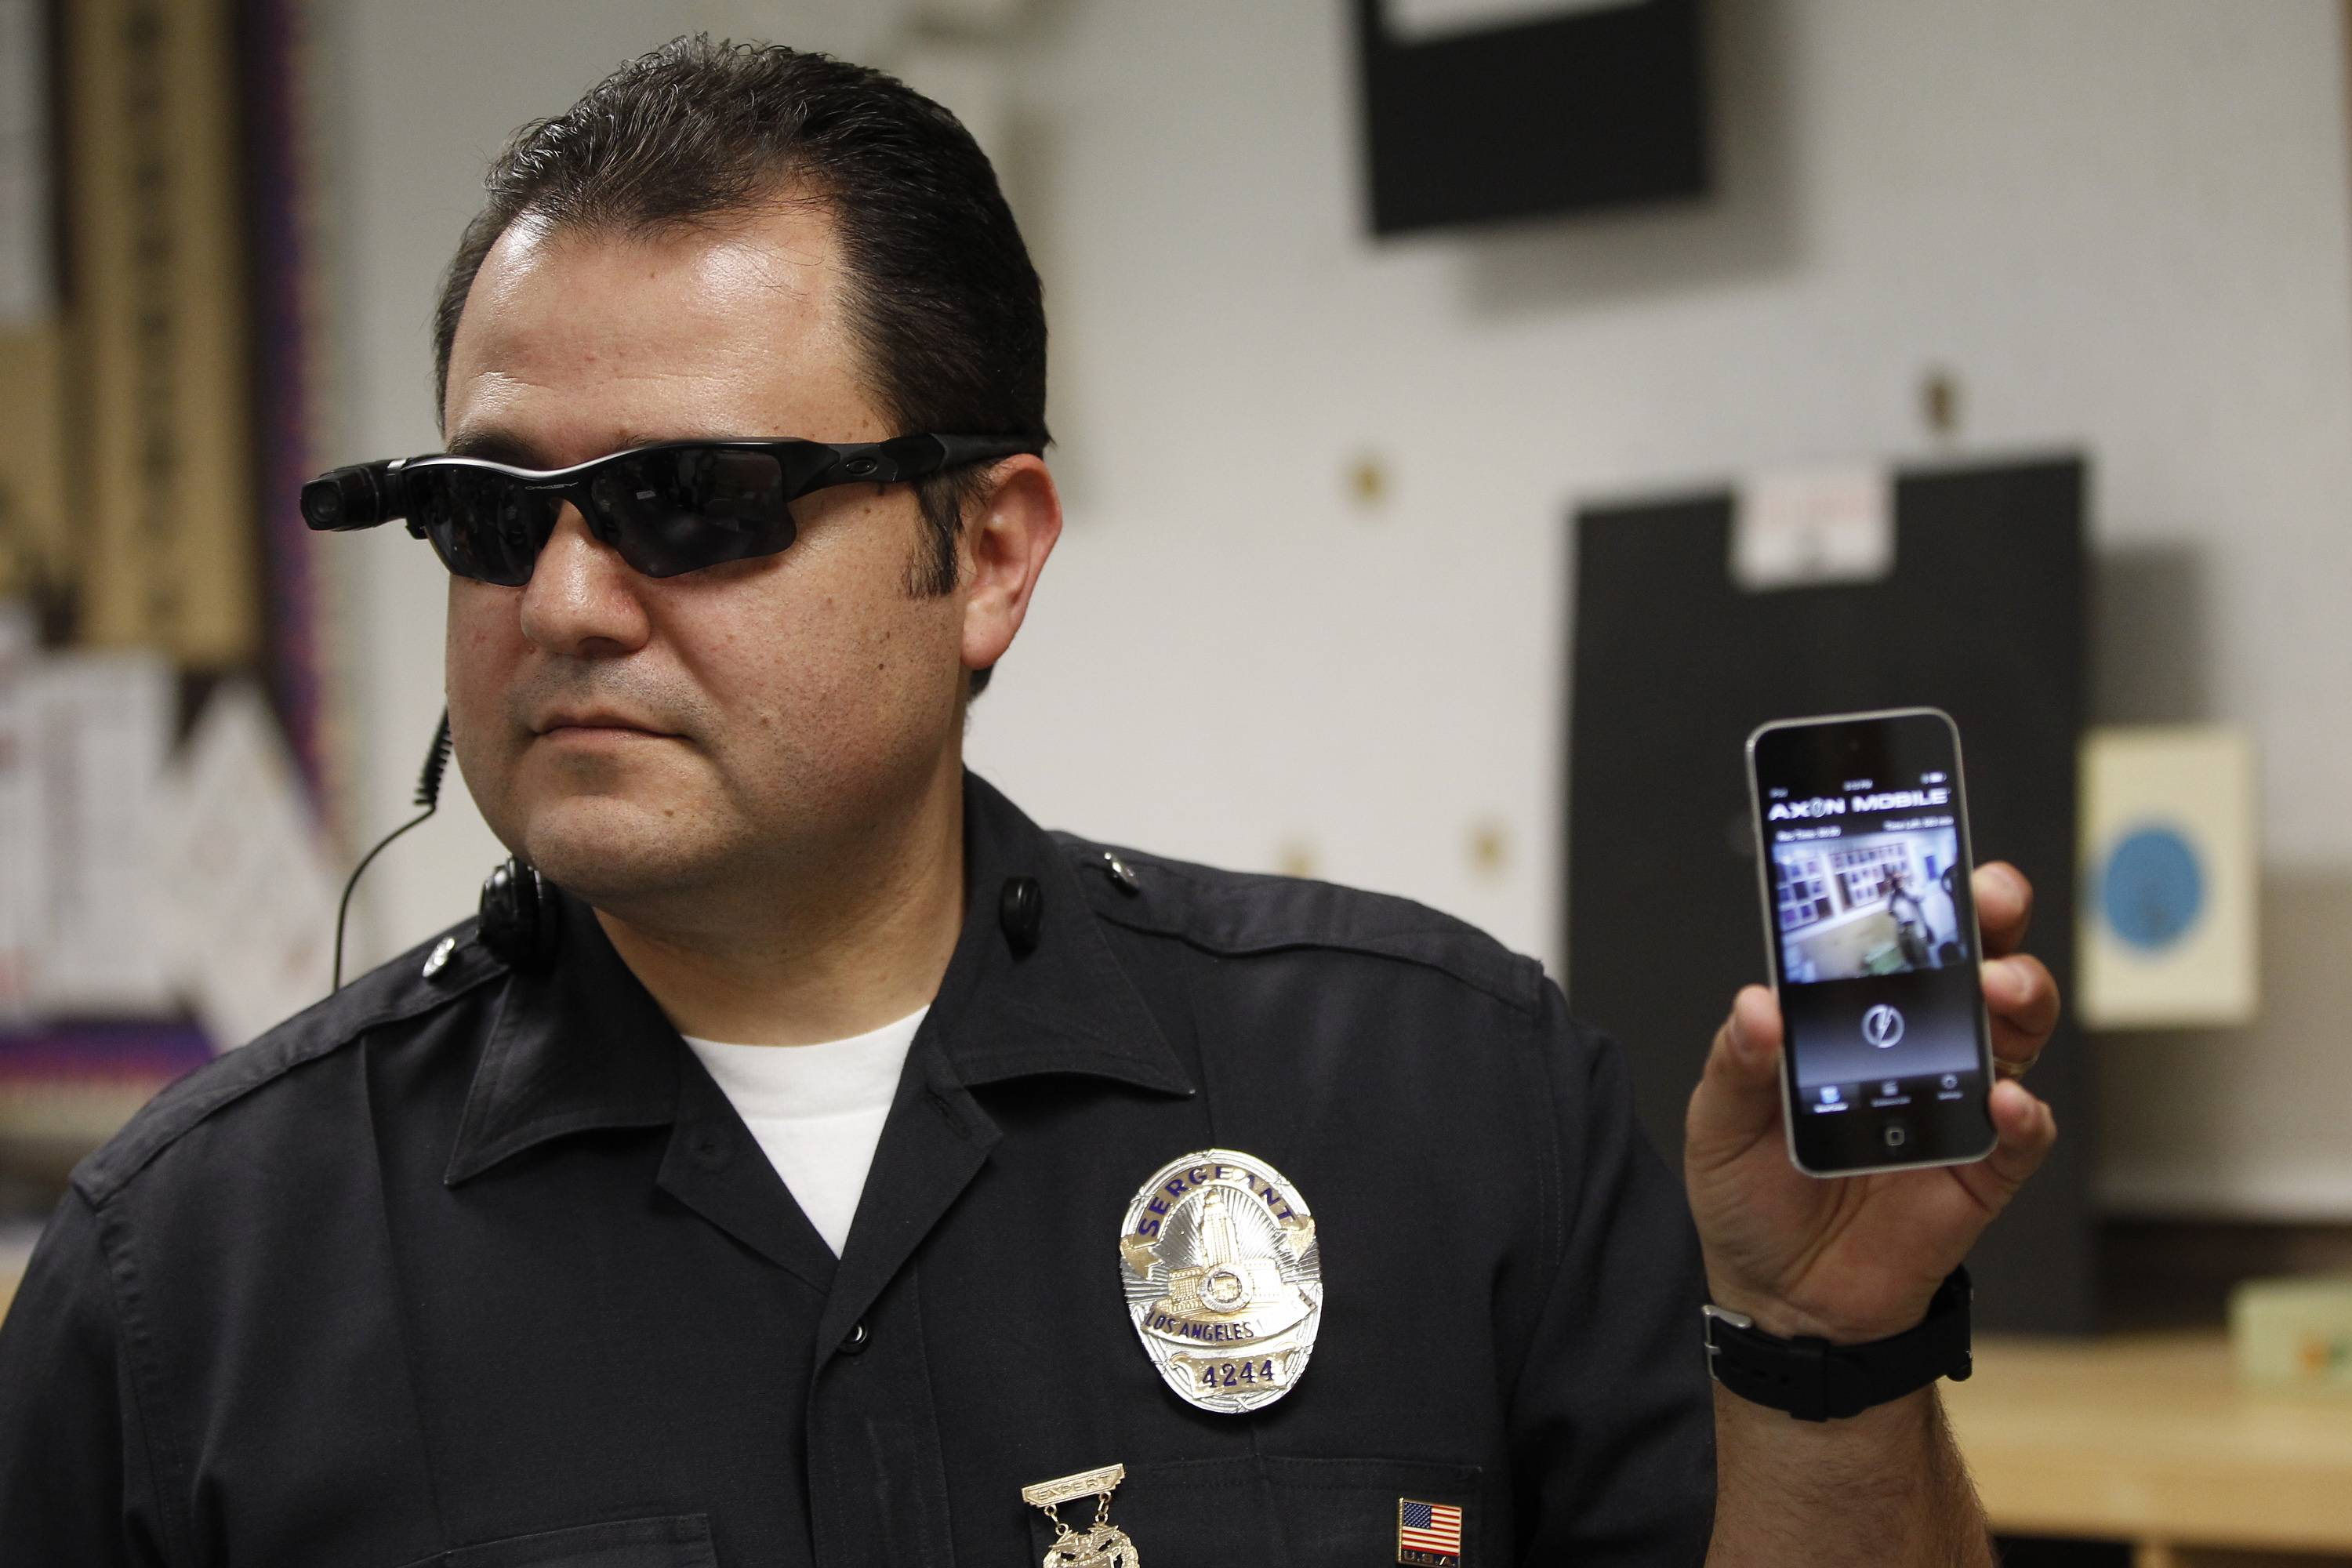 ADVANCE FOR MOVEMENT SATURDAY MARCH 15 - This Jan. 15, 2014 file photo shows Los Angeles Police Sgt. Daniel Gomez demonstrating a video feed from his camera into his cellphone as on-body cameras are demonstrated for the media in Los Angeles. Thousands of police agencies have equipped officers with cameras to wear with their uniforms, but they've frequently lagged in setting policies on how they're used, potentially putting privacy at risk and increasing their liability. As officers in one of every six departments across the nation now patrols with tiny lenses on their chests, lapels or sunglasses, administrators and civil liberties experts are trying to envision and address troublesome scenarios that could unfold in front of a live camera.